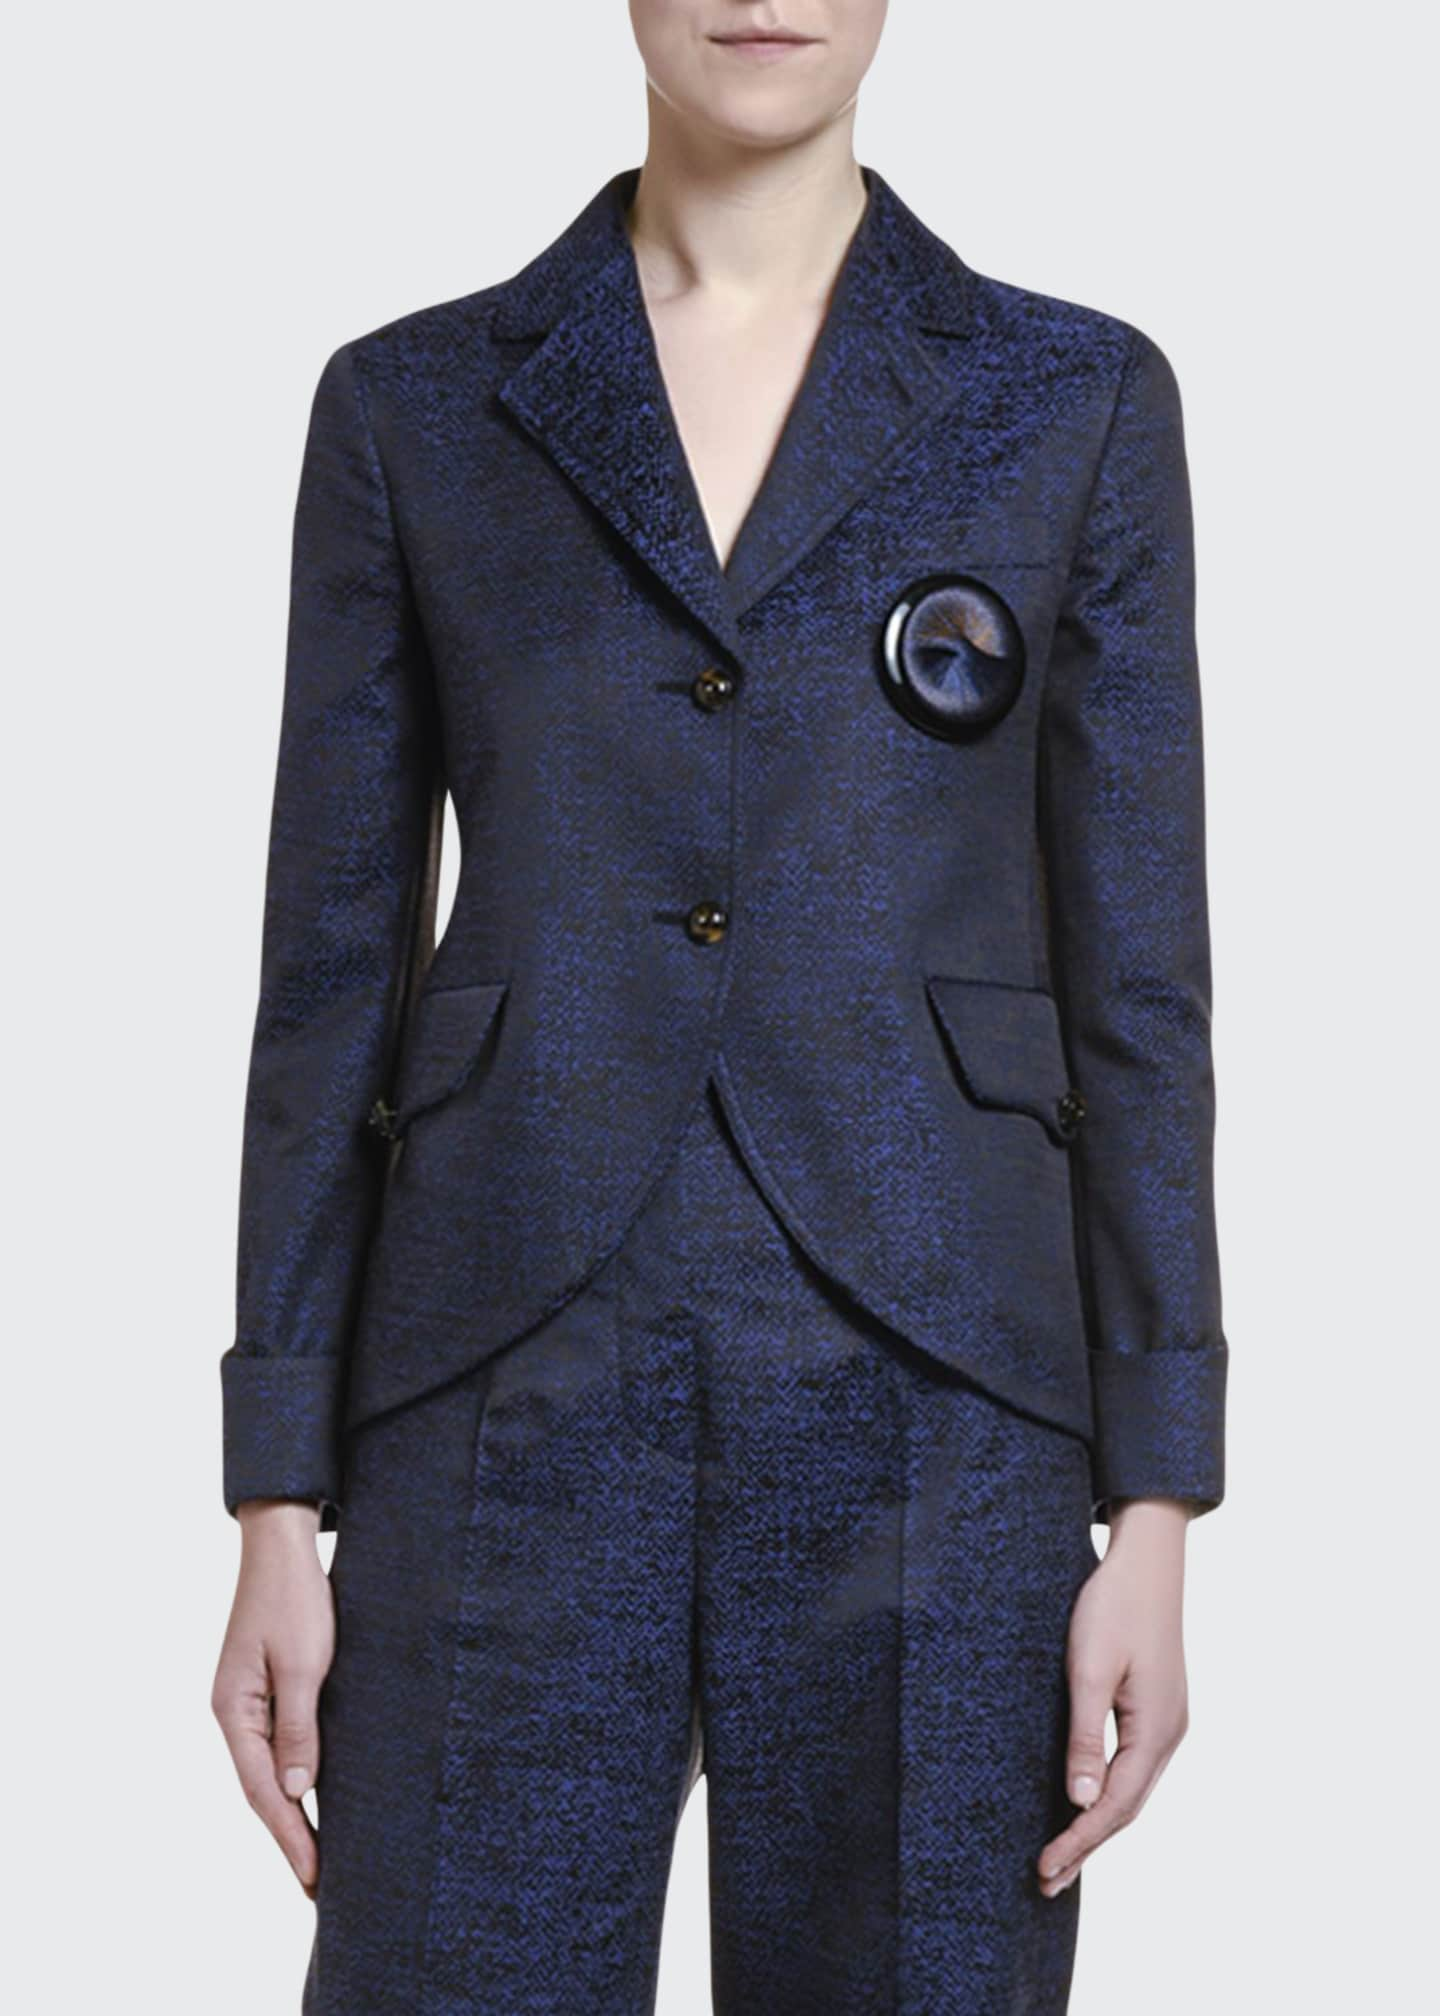 Silk-Print Jacquard Two-Button Jacket